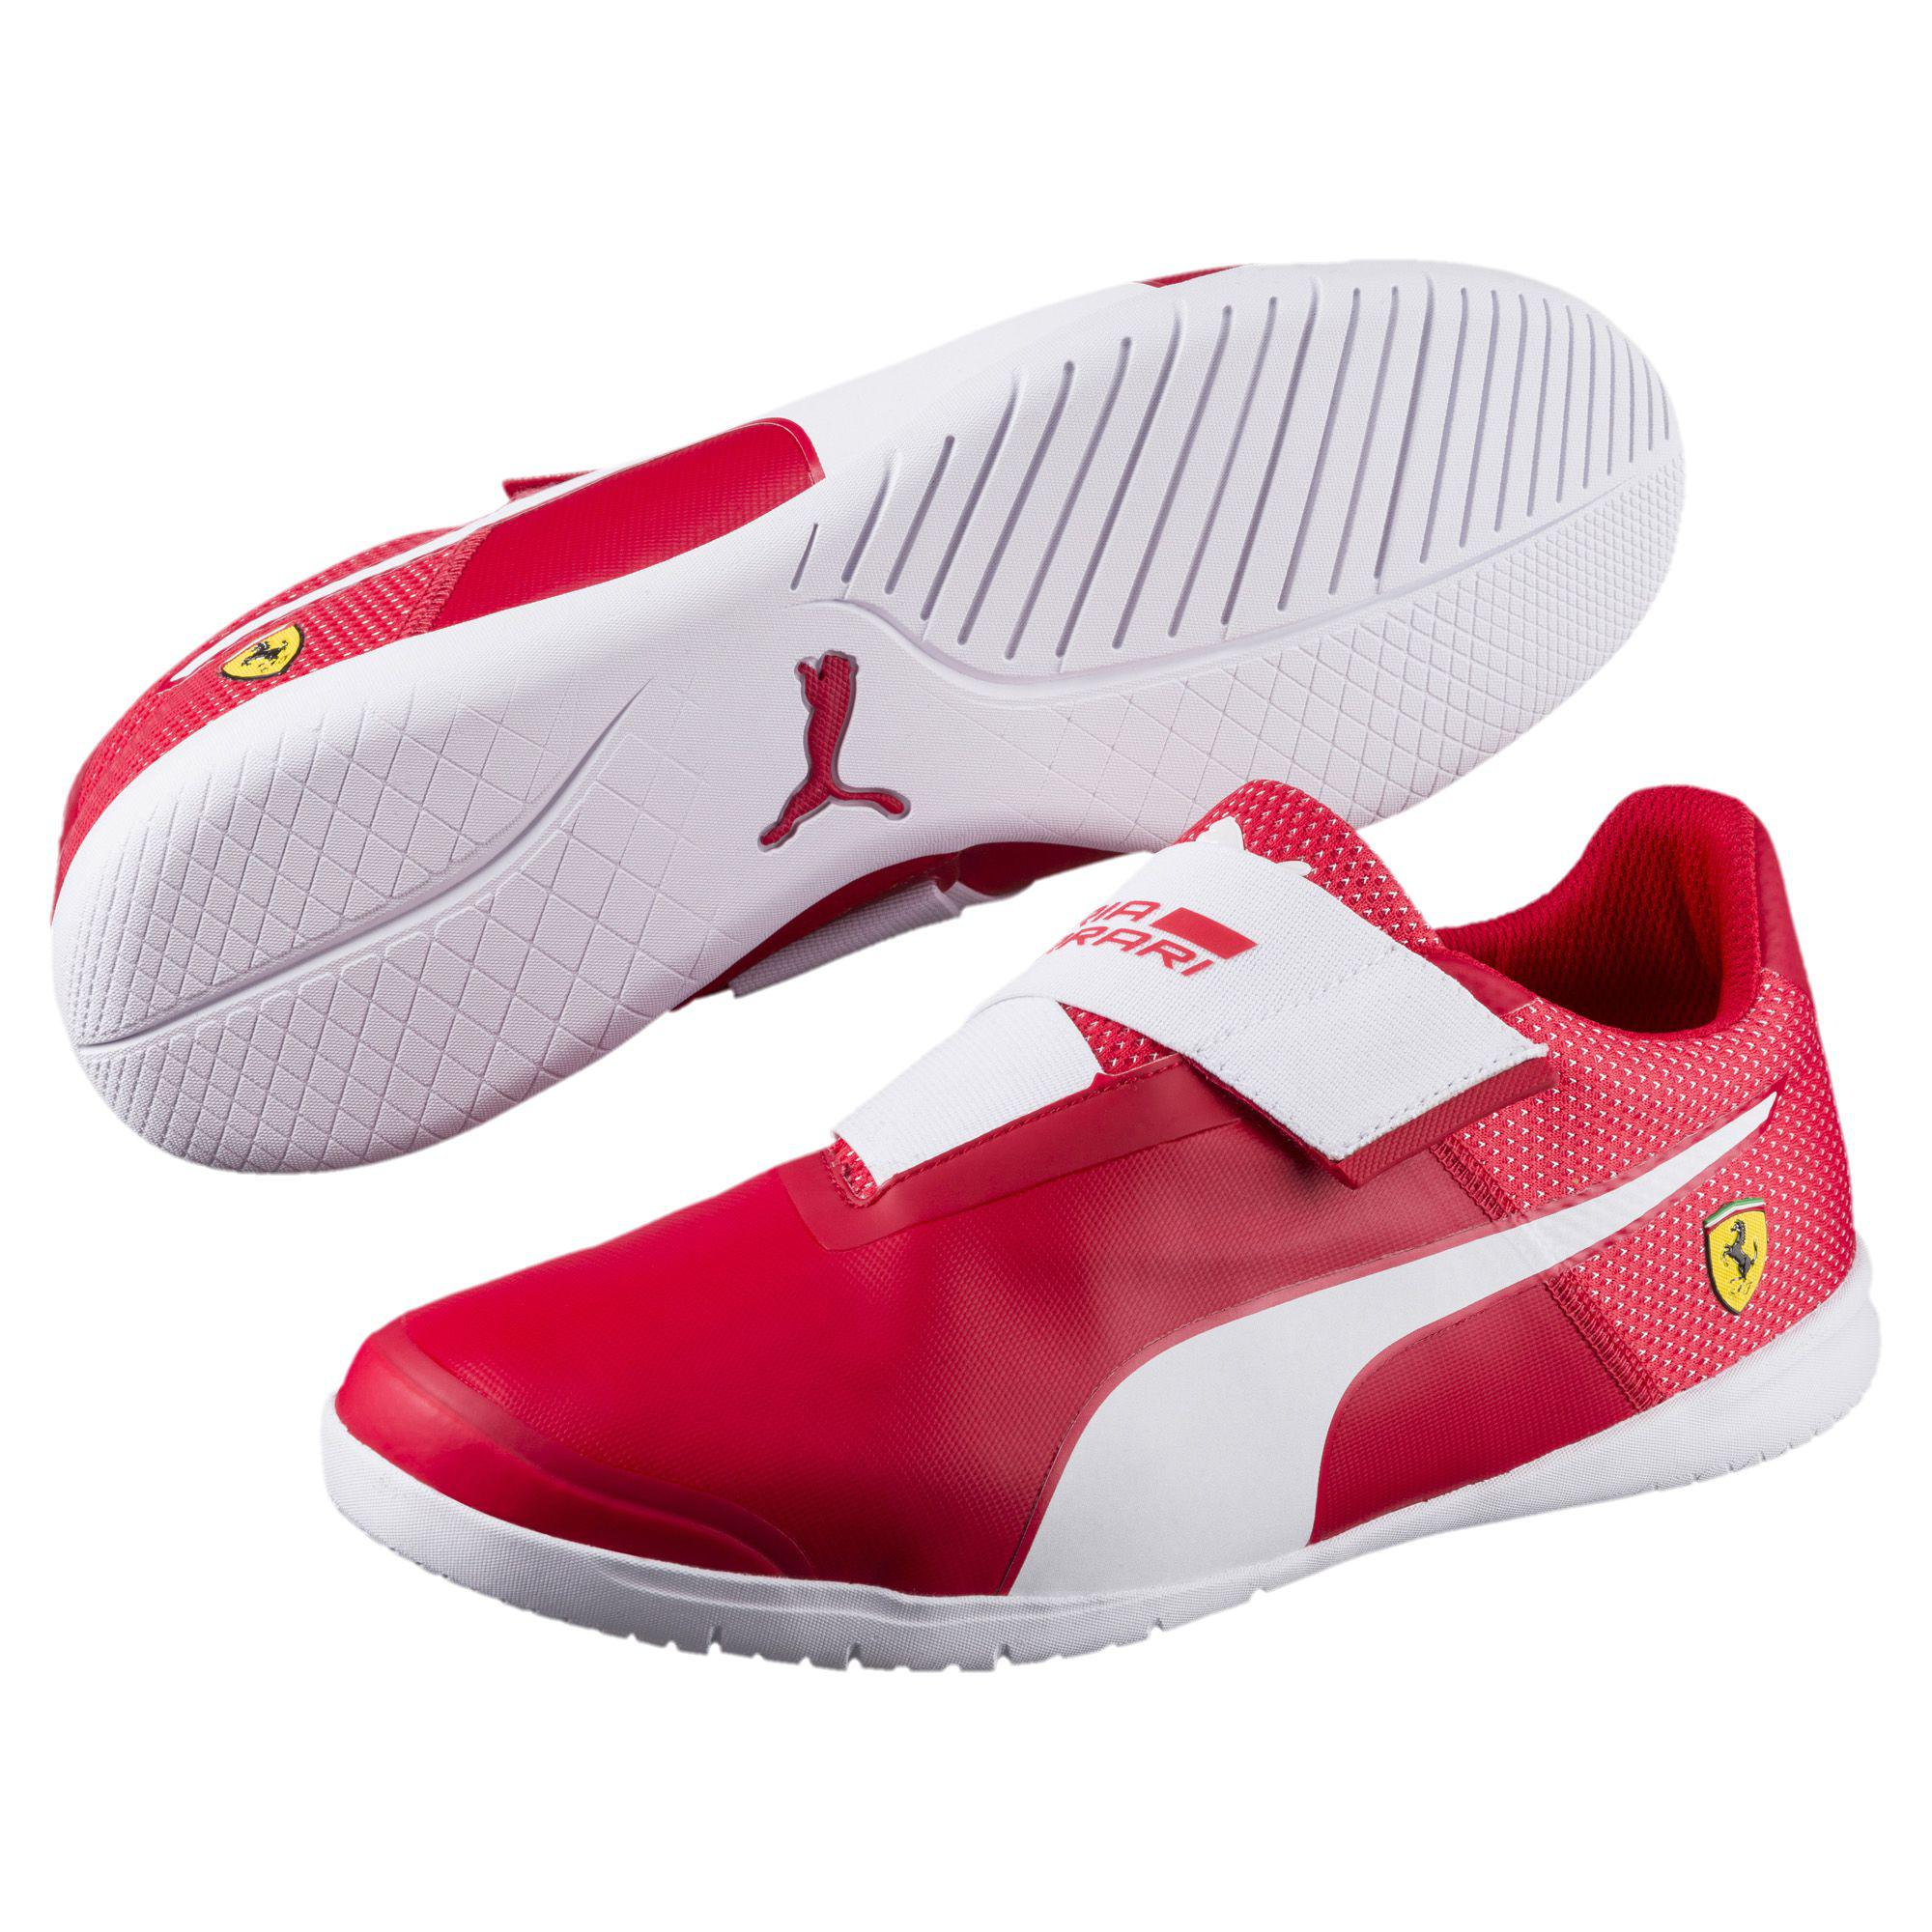 471dbef2c7b359 Lyst - PUMA Ferrari Changer Ignite Strap Men s Shoes in Red for Men